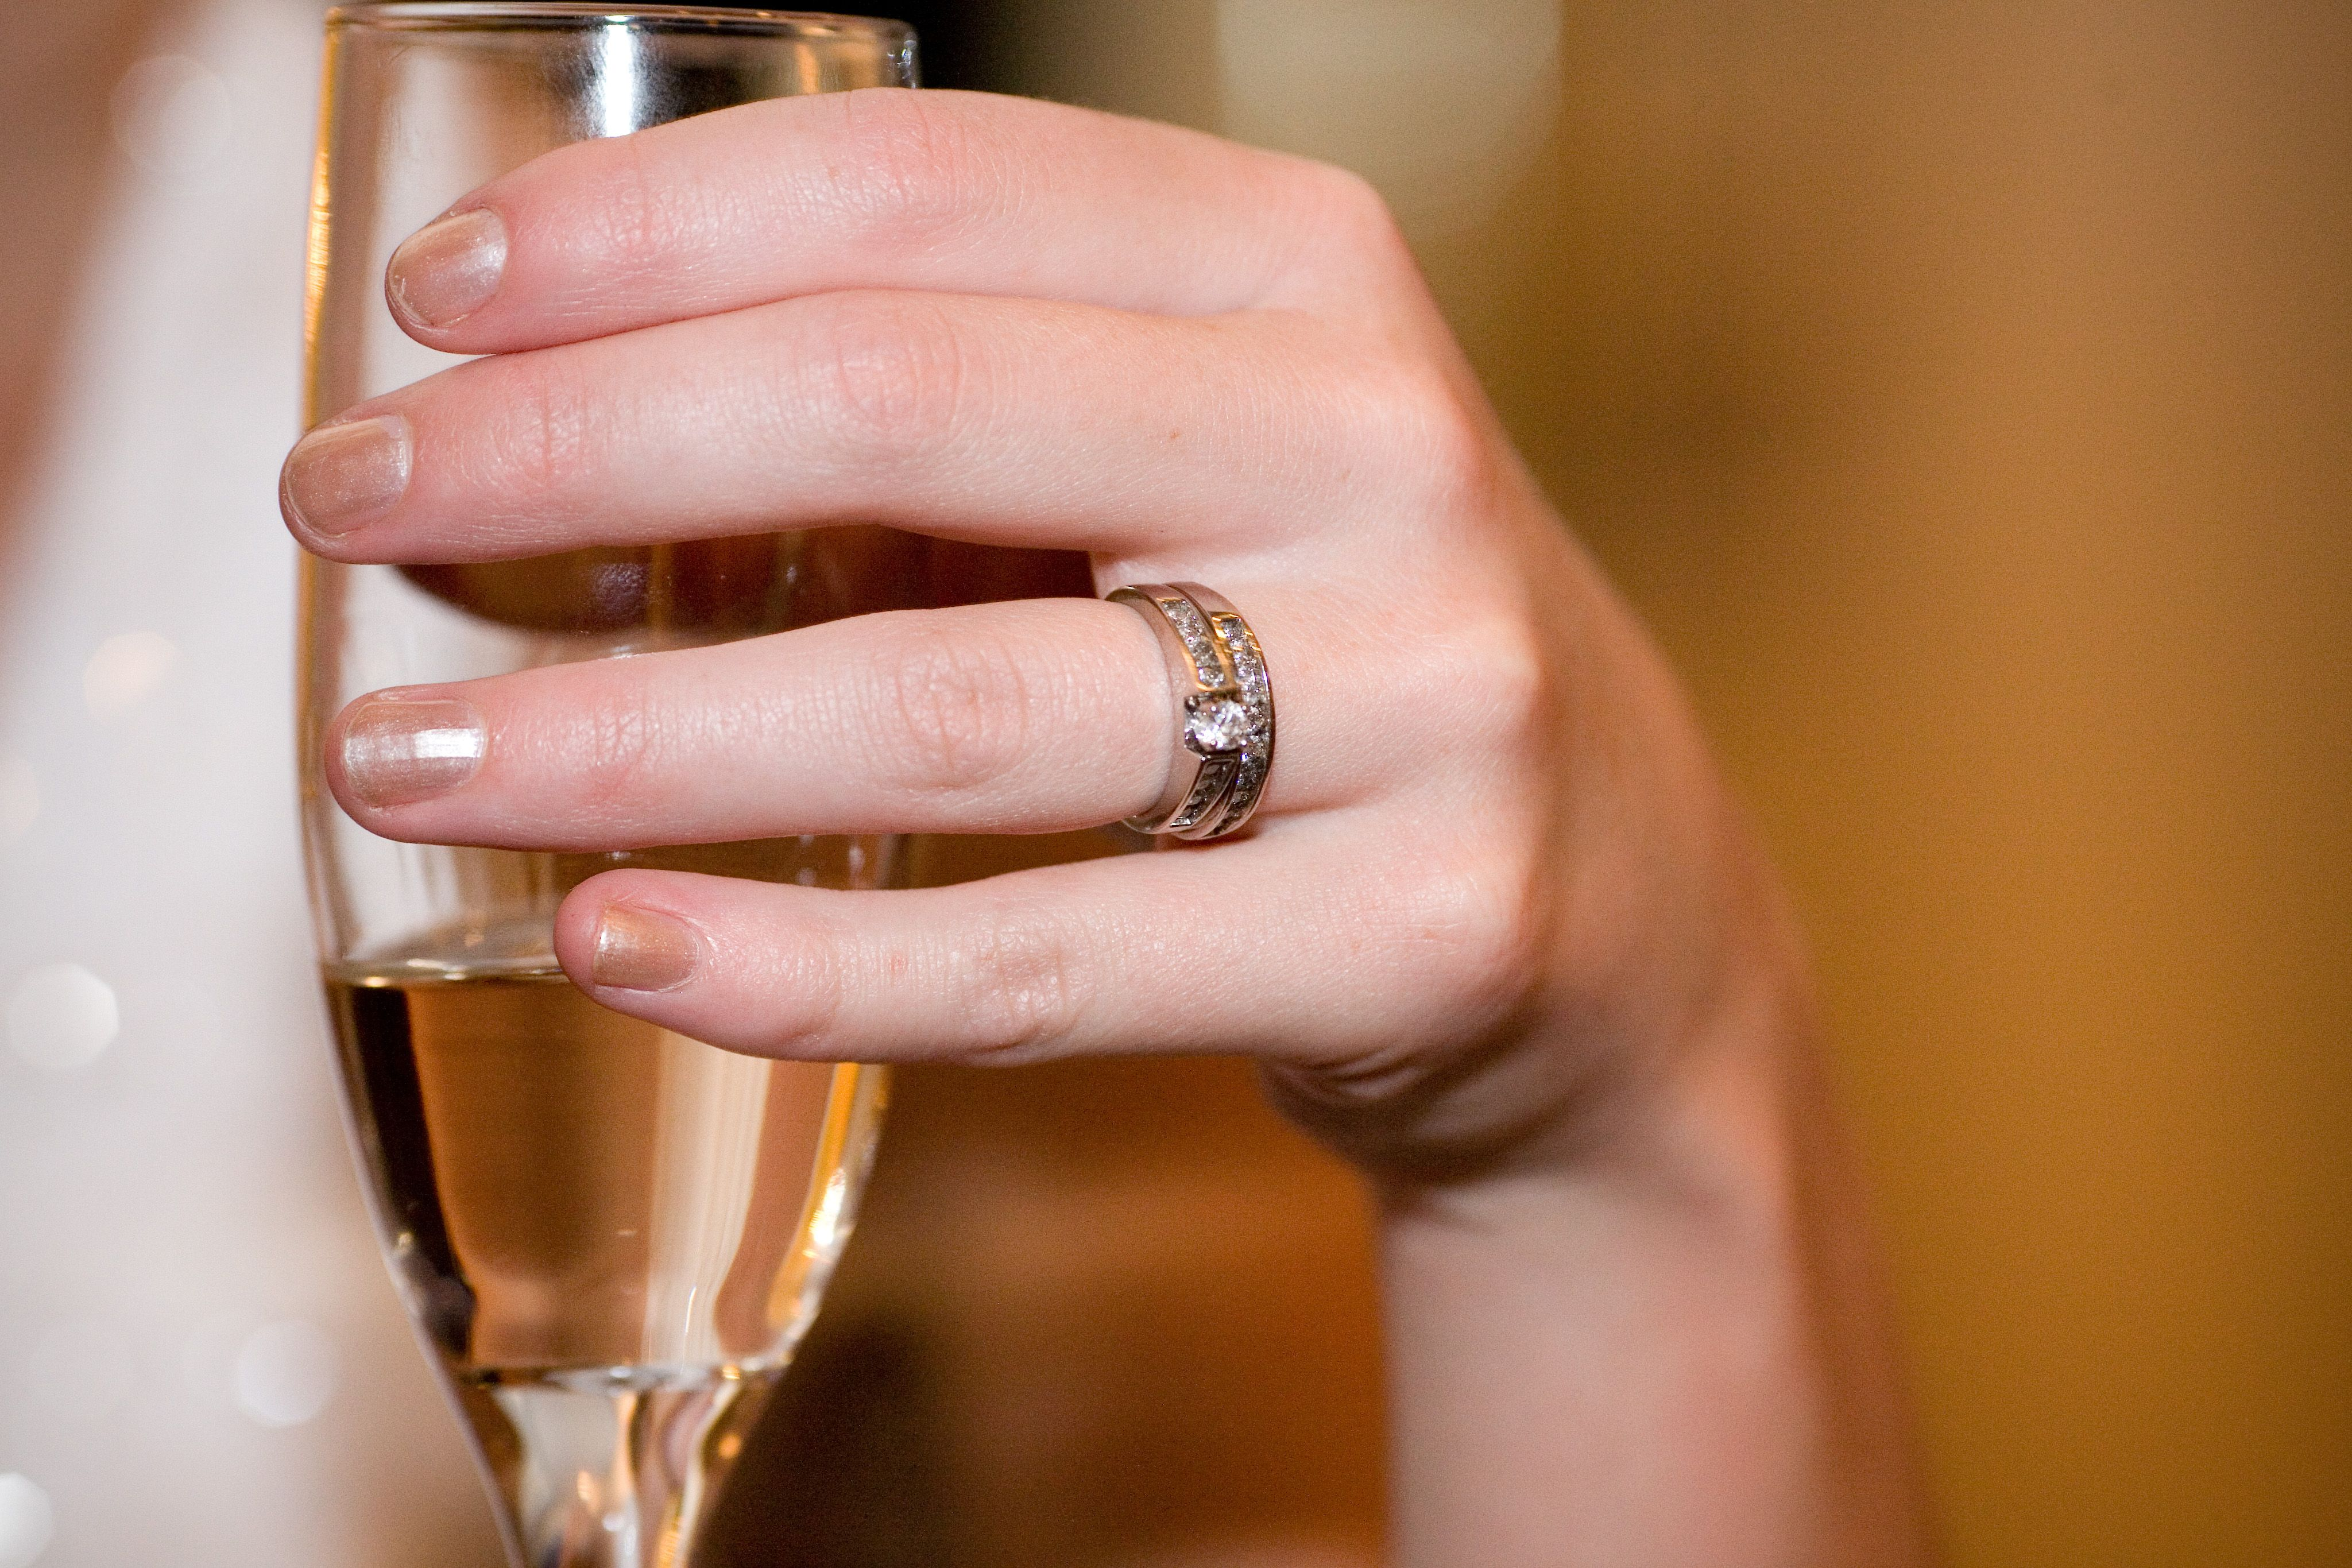 bride wedding ring and champagne glass   Wedding photos   Pinterest ...